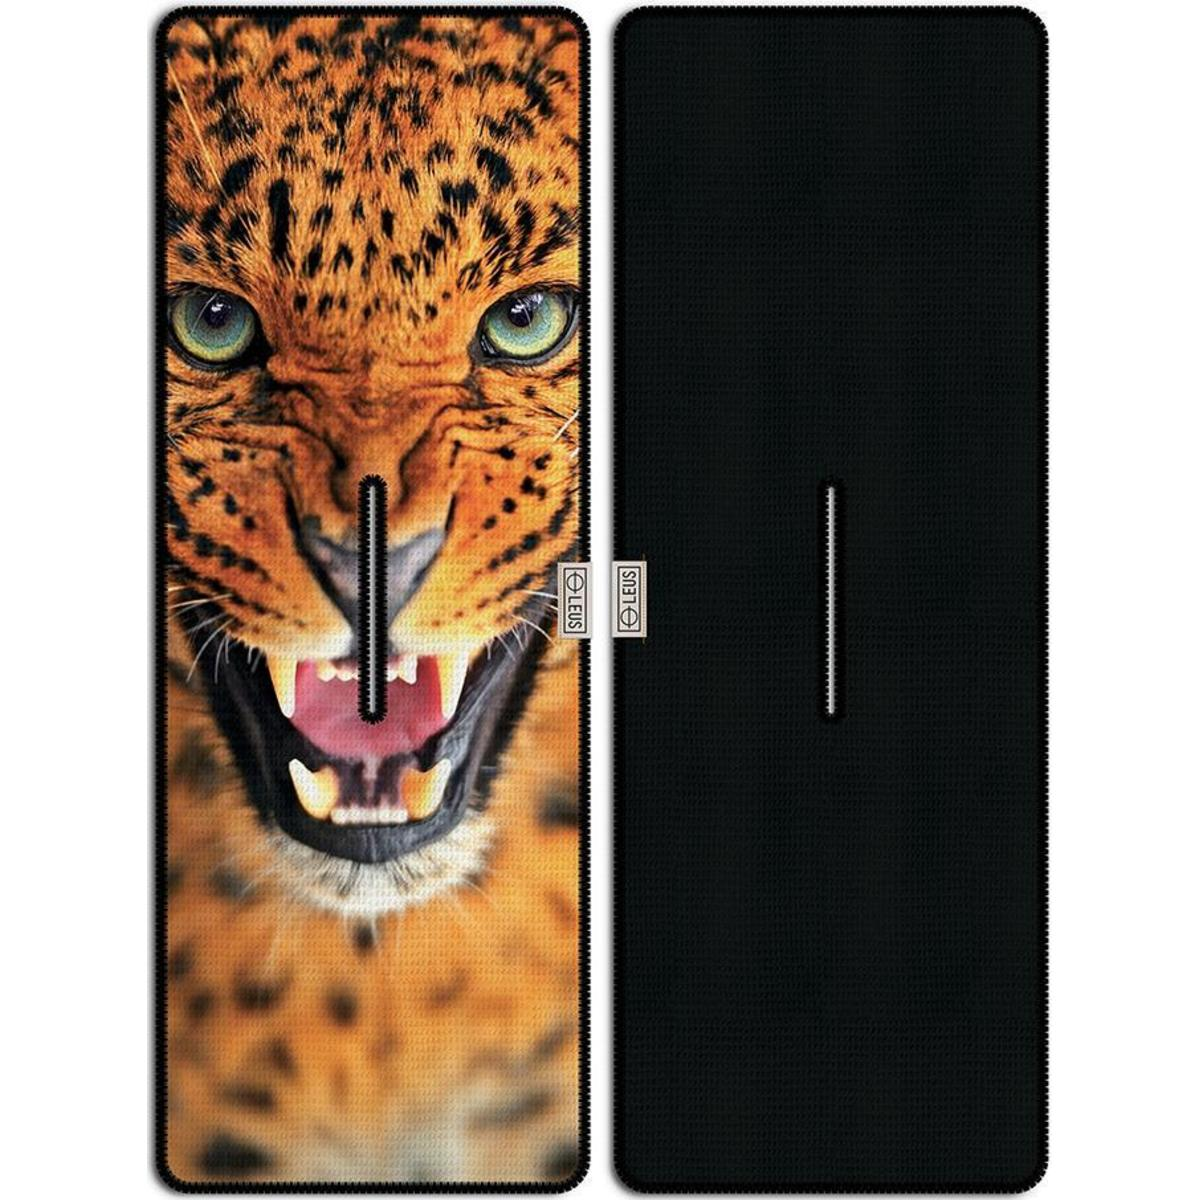 LEUS PANTHERA CADDY TOWEL